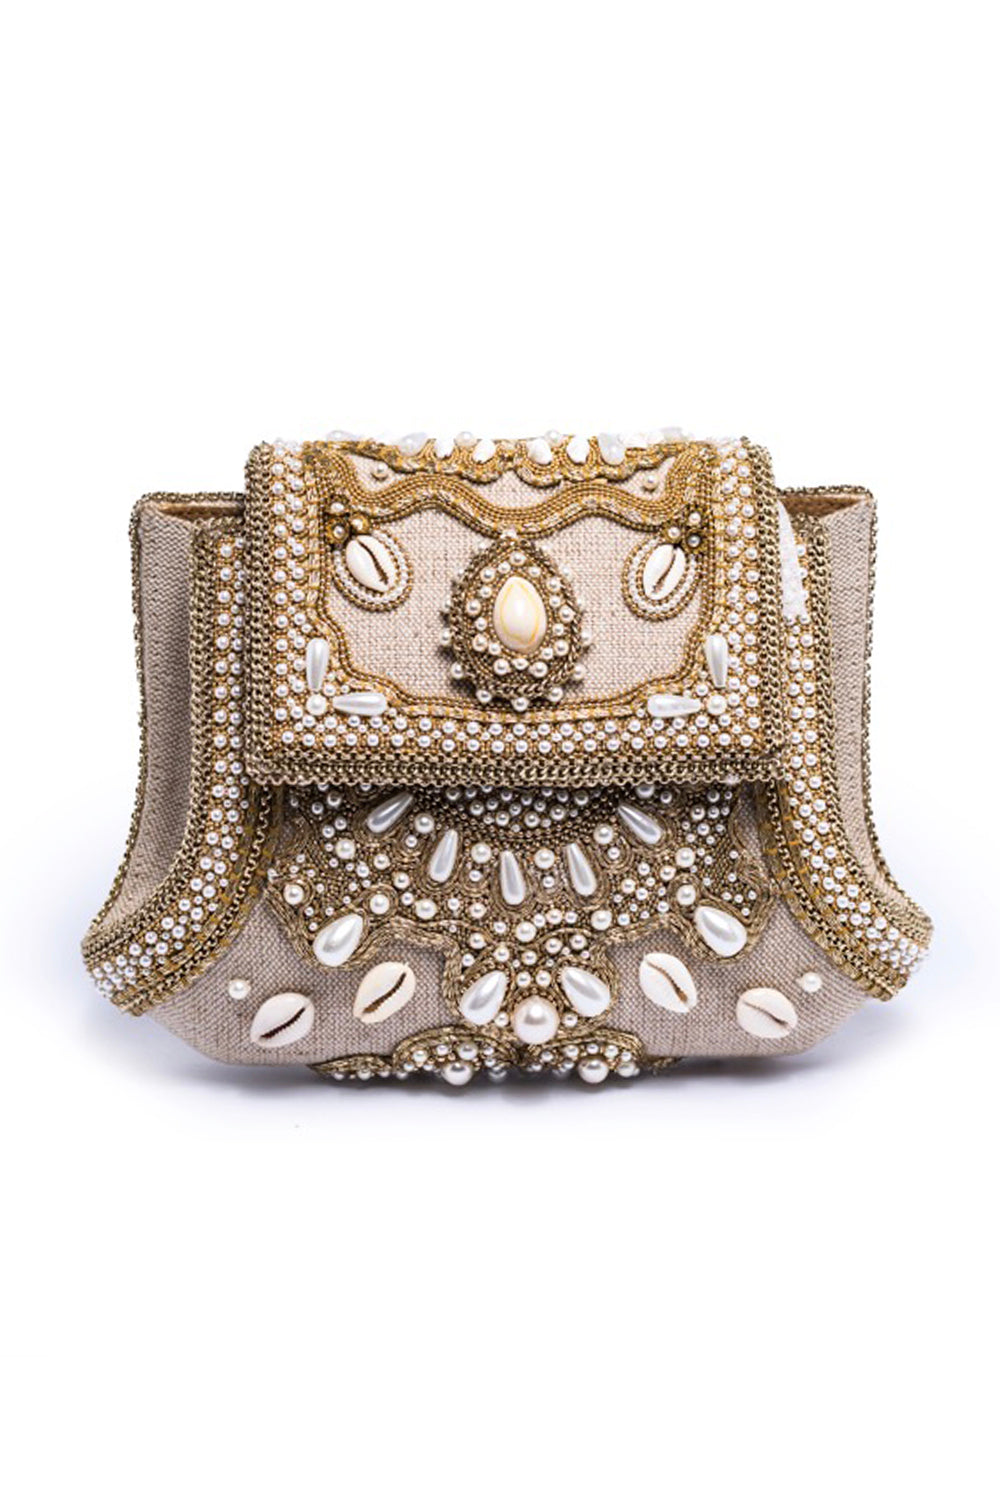 Rhama Linen Clutch With Beads Shells In Beige & Gold